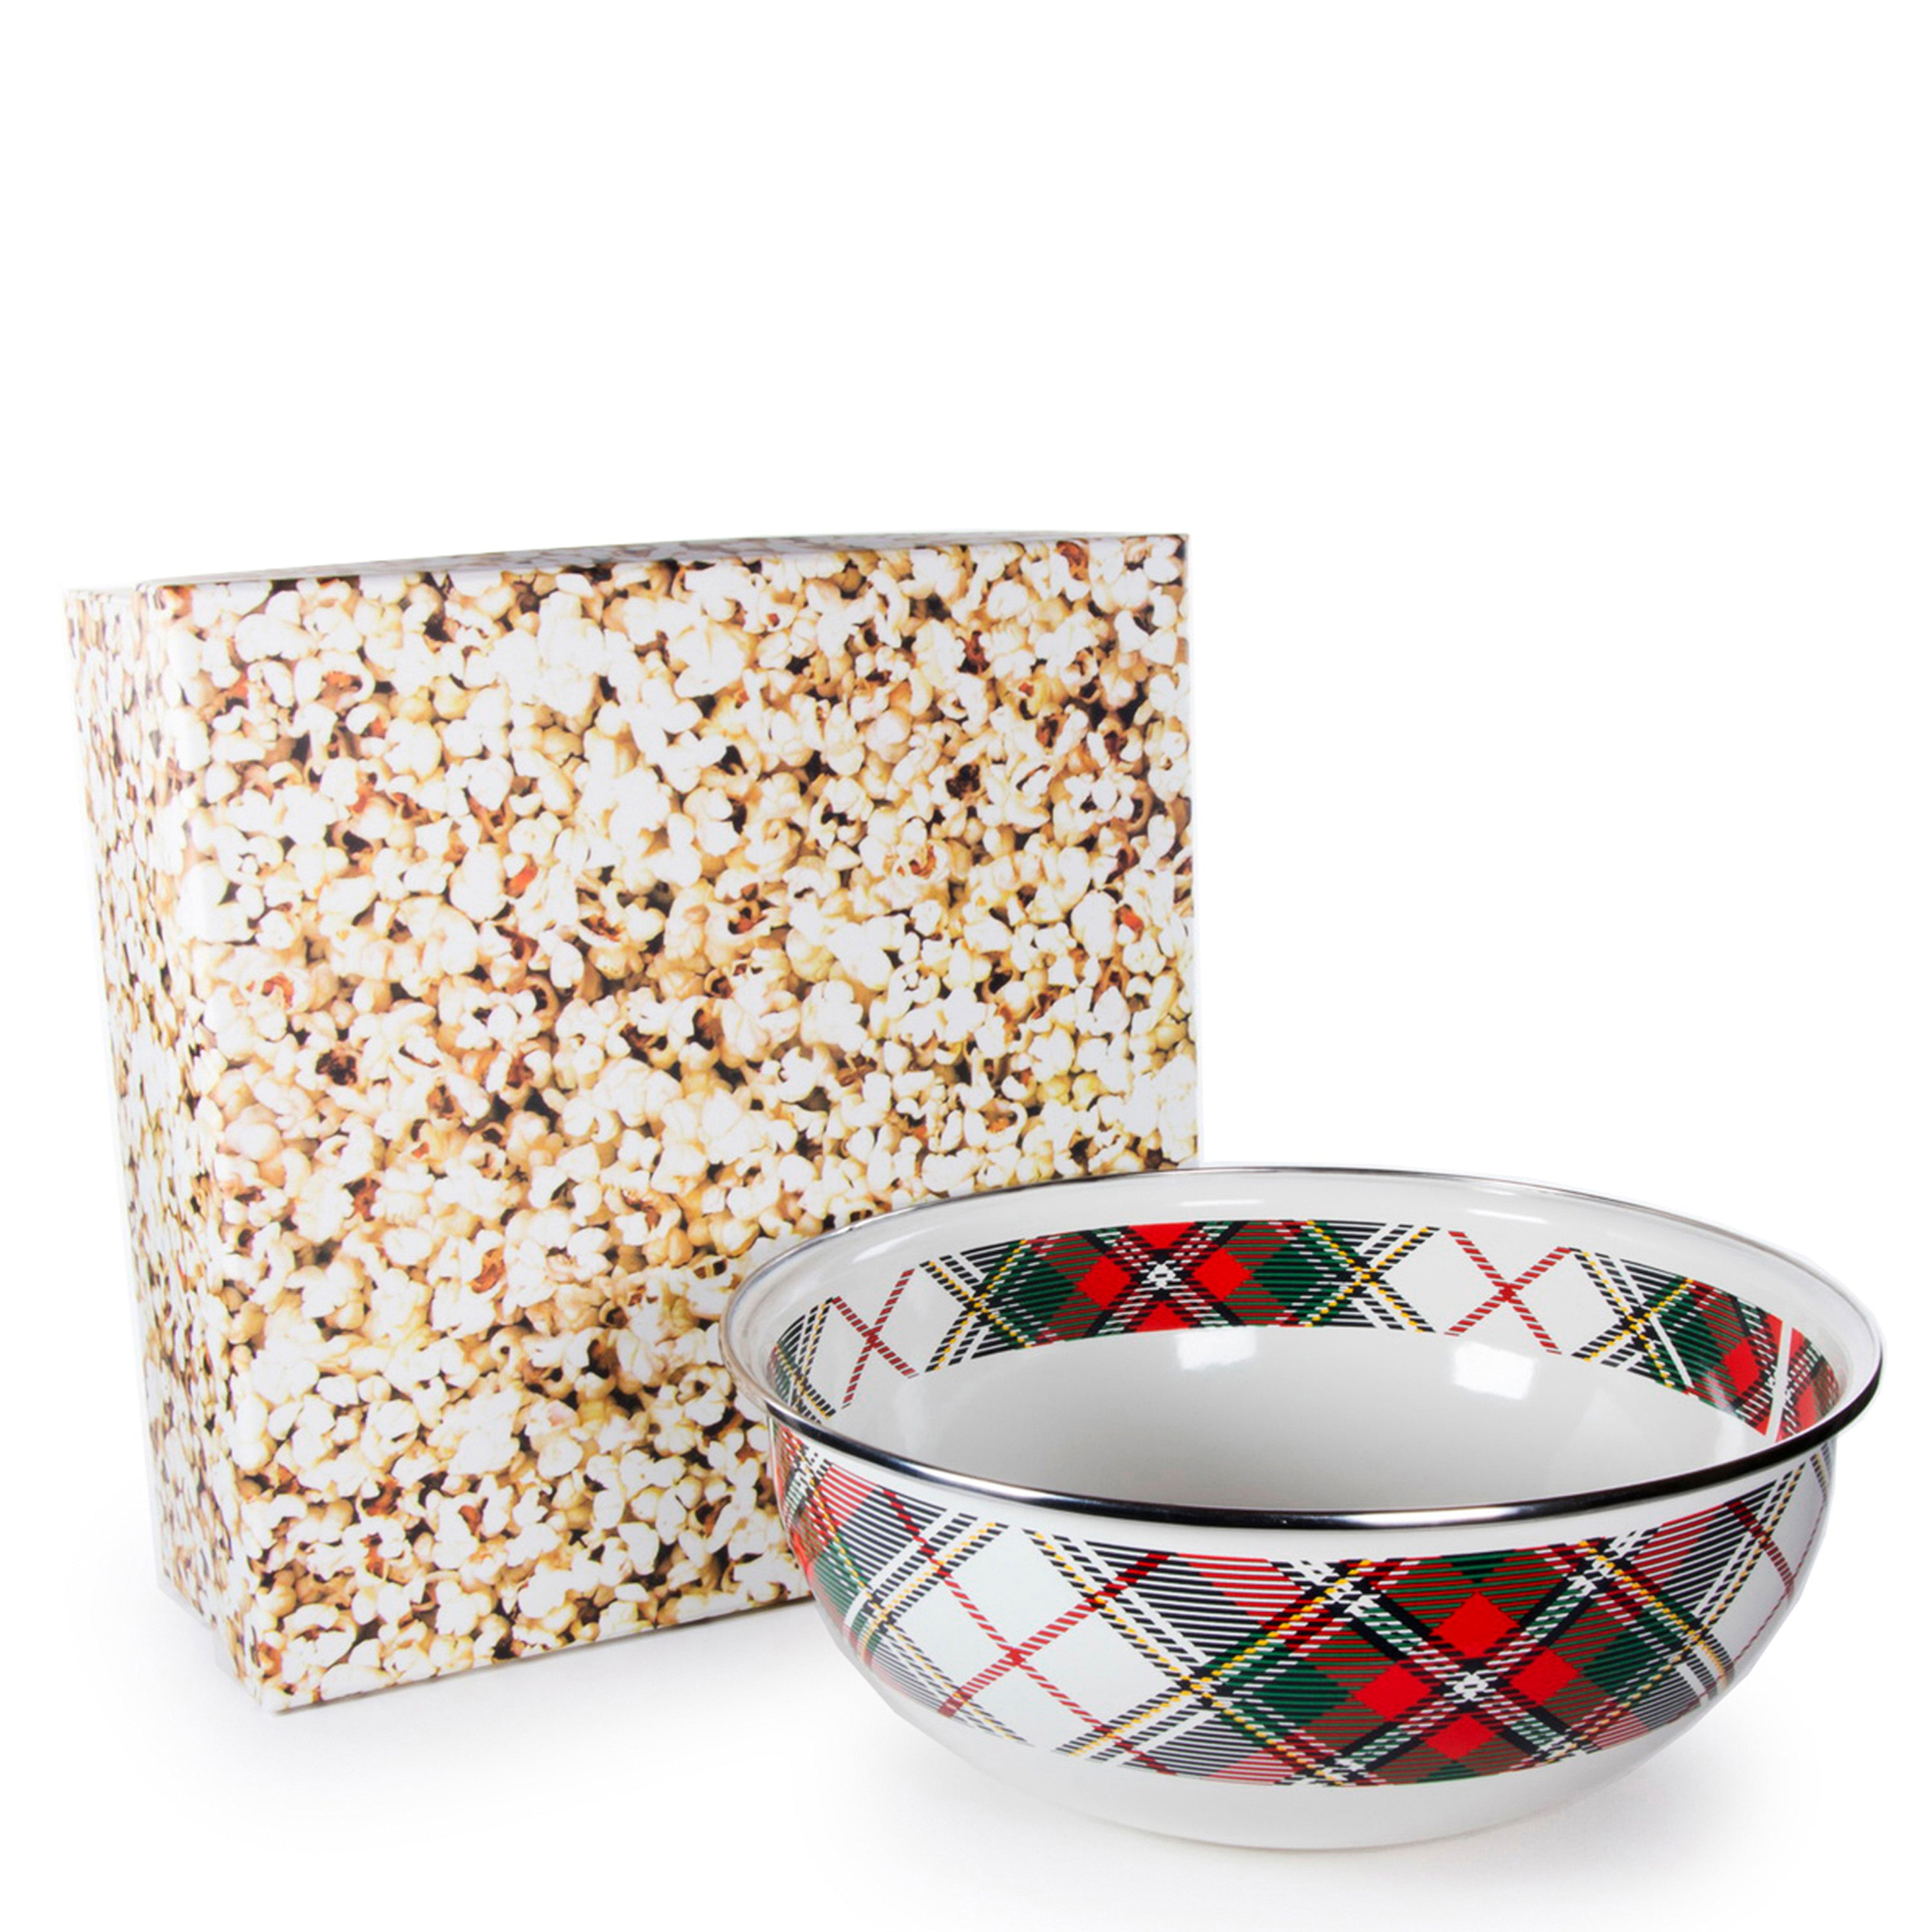 Highland Plaid Popcorn Boxed